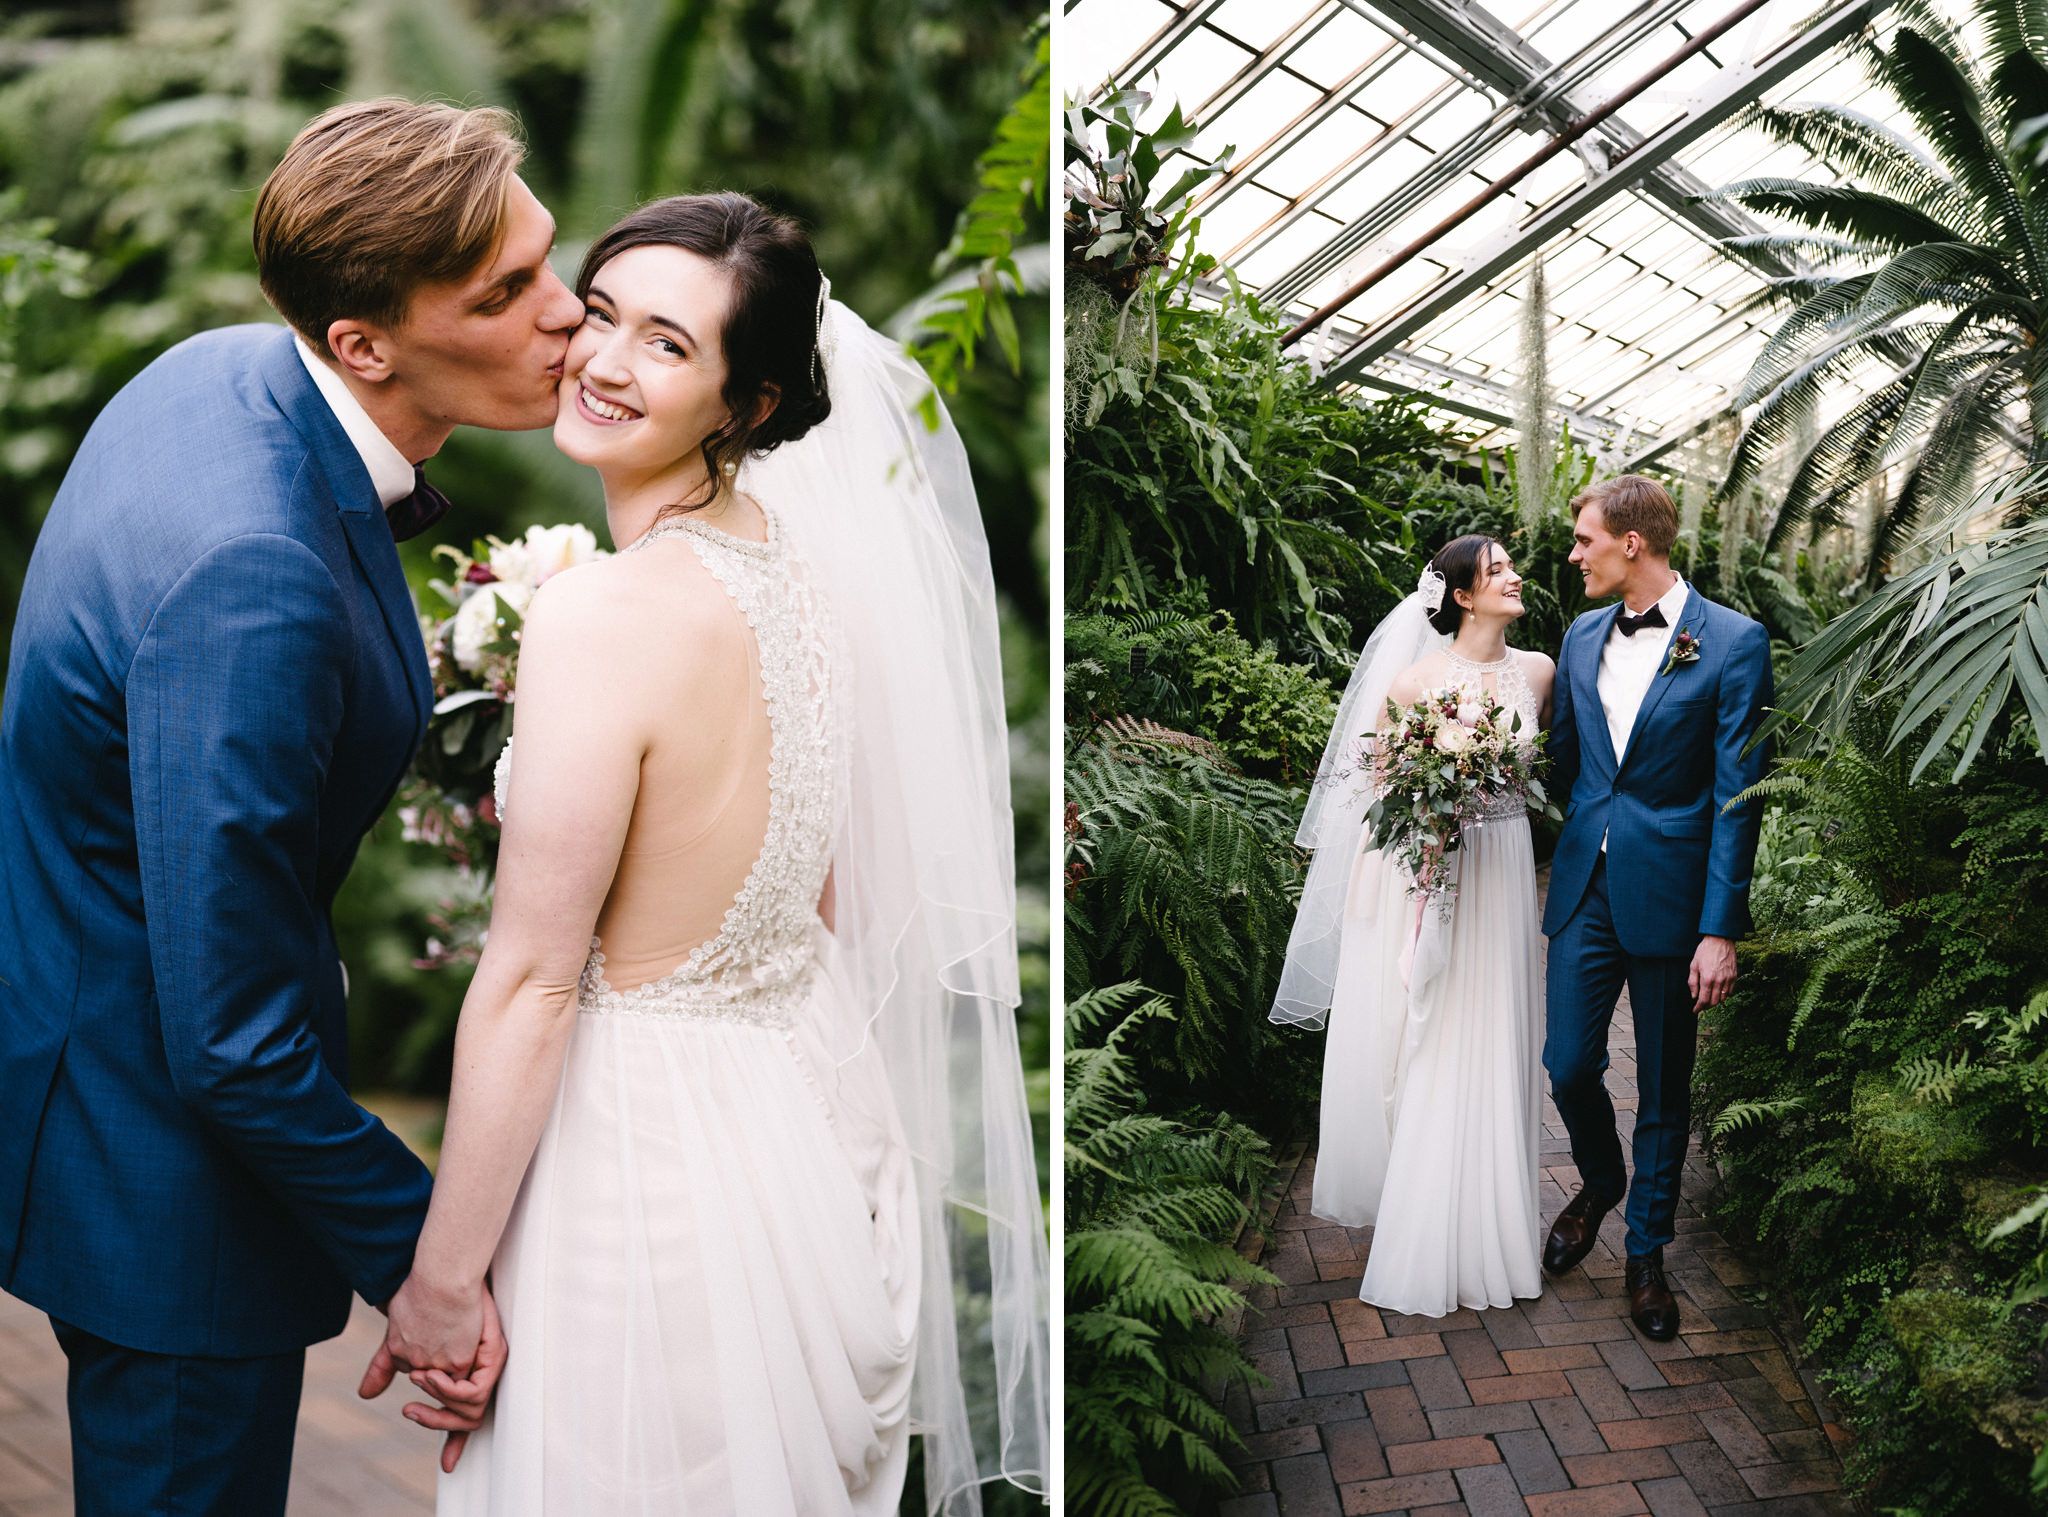 035-rempel-photography-chicago-wedding-inspiration-meredith-will-garfield-park-conservatory-painted-door-menguin-here-comes-the-bride-lulus-marcellos.jpg